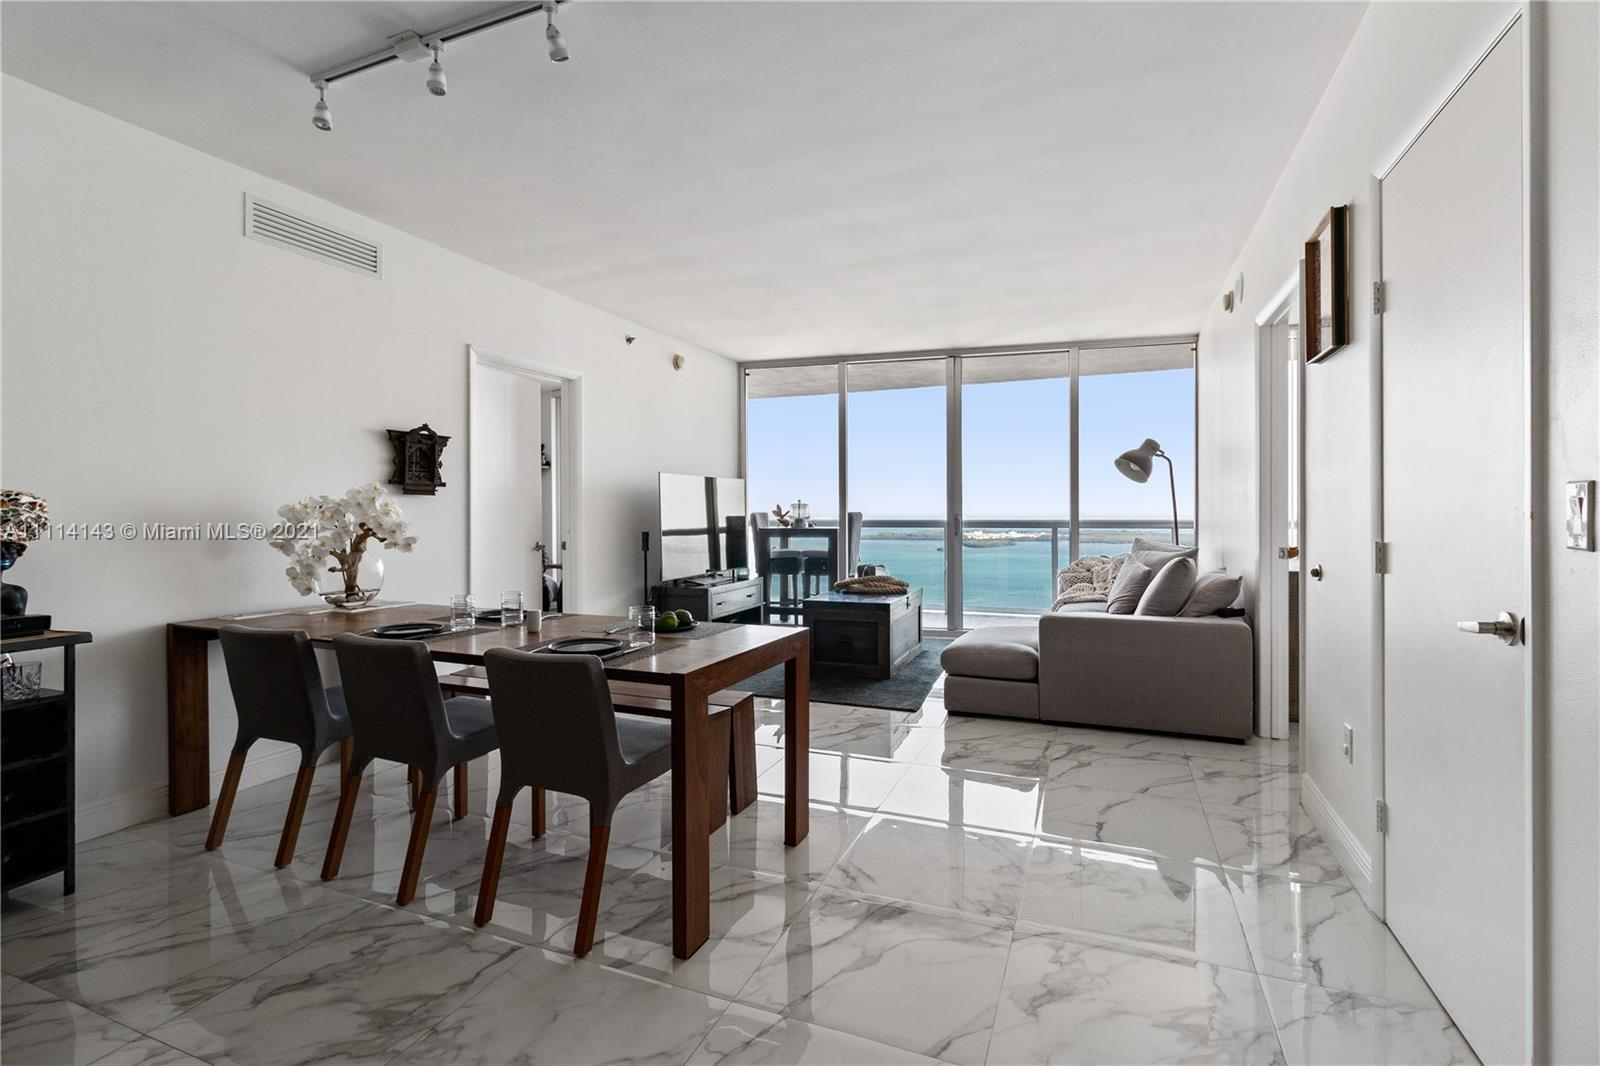 Breathtaking views of the bay and the ocean from this 2/2 +den on the 55th floor. Highest floor avai